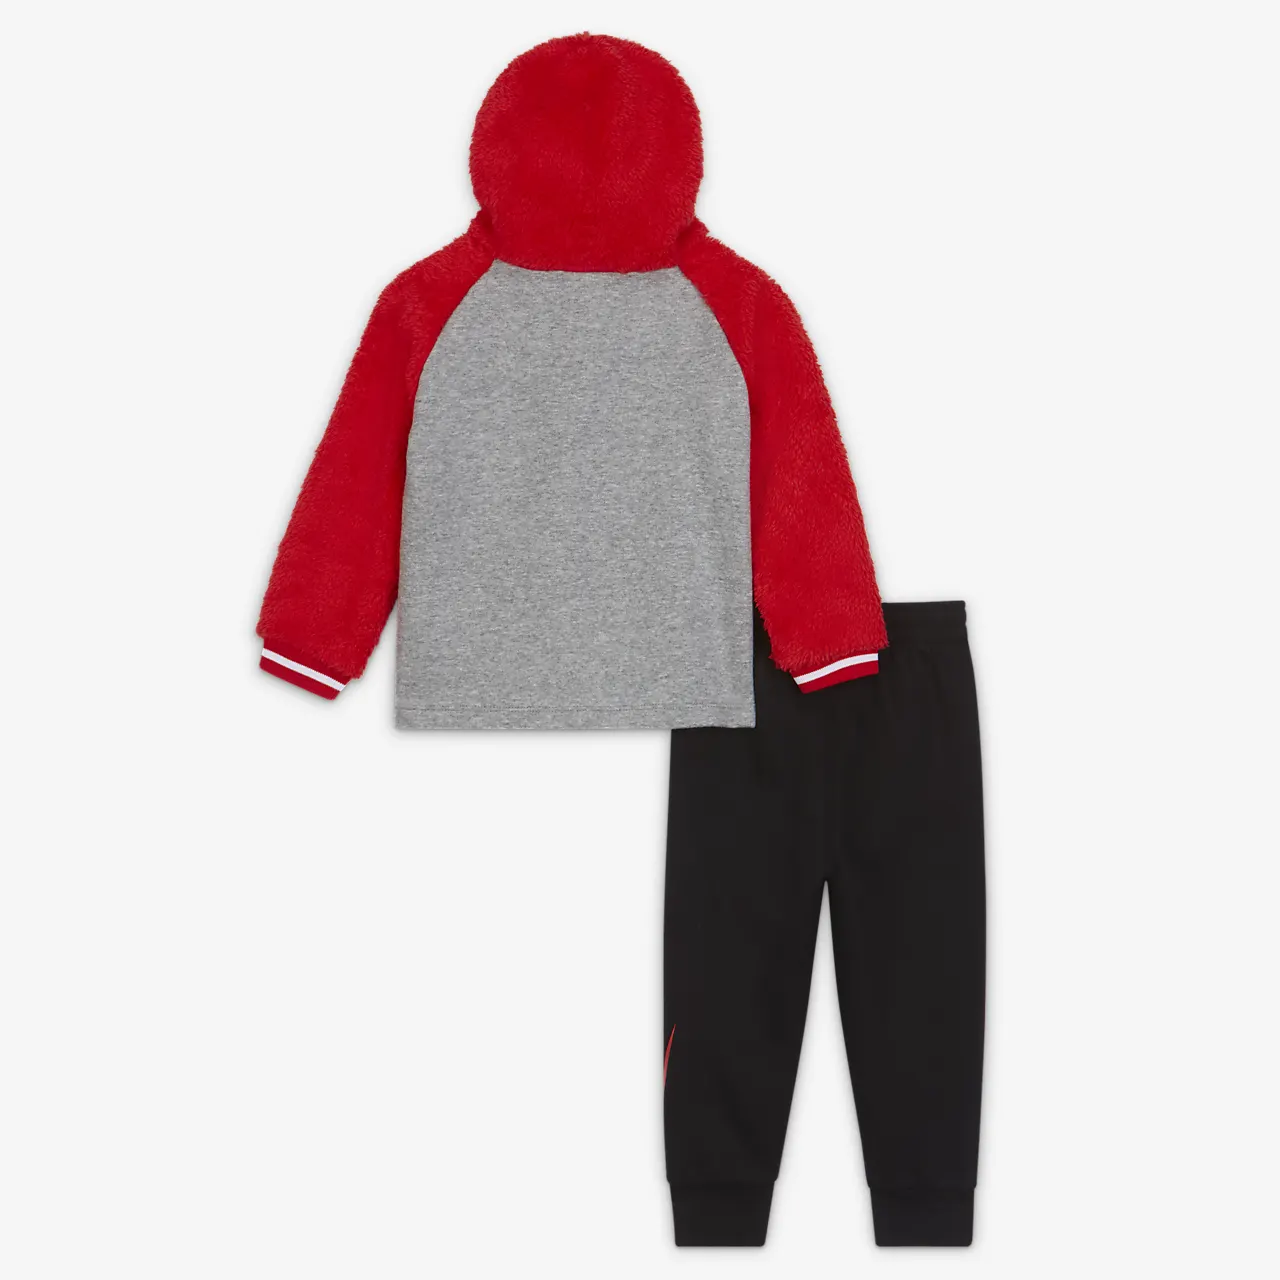 Nike Baby (12-24M) Hoodie and Joggers Set 66H104-023